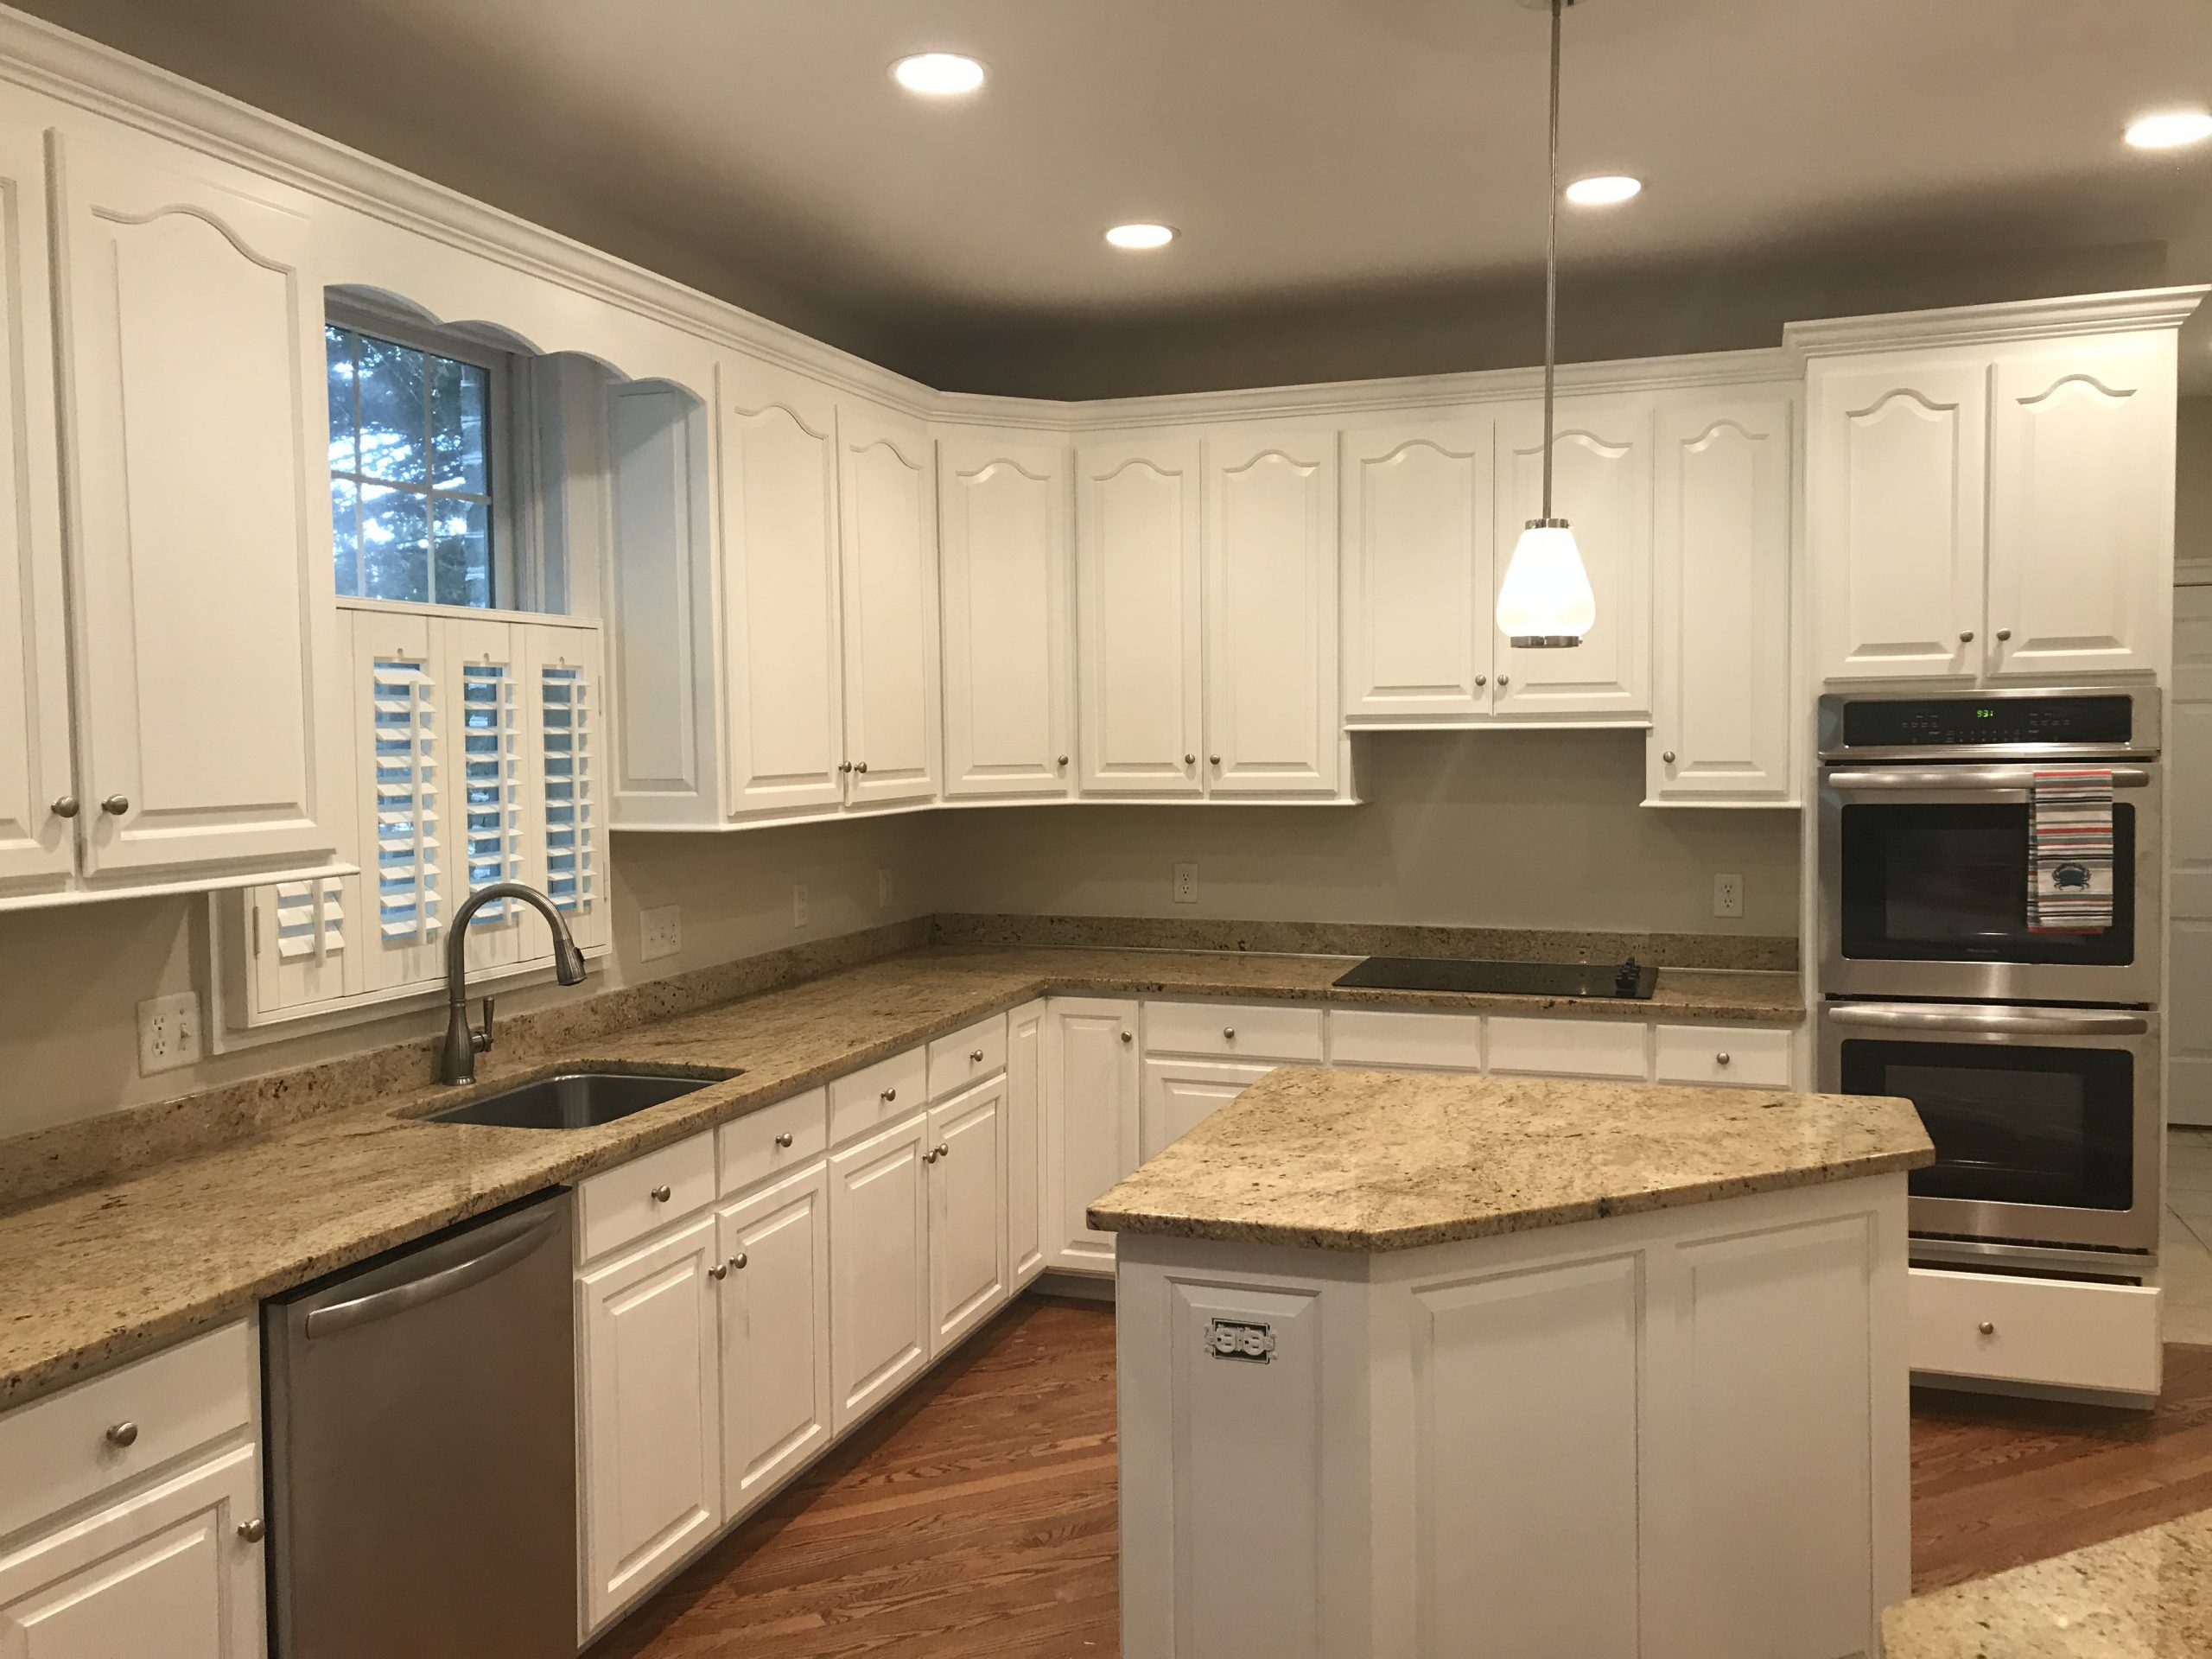 painted kitchen after picture